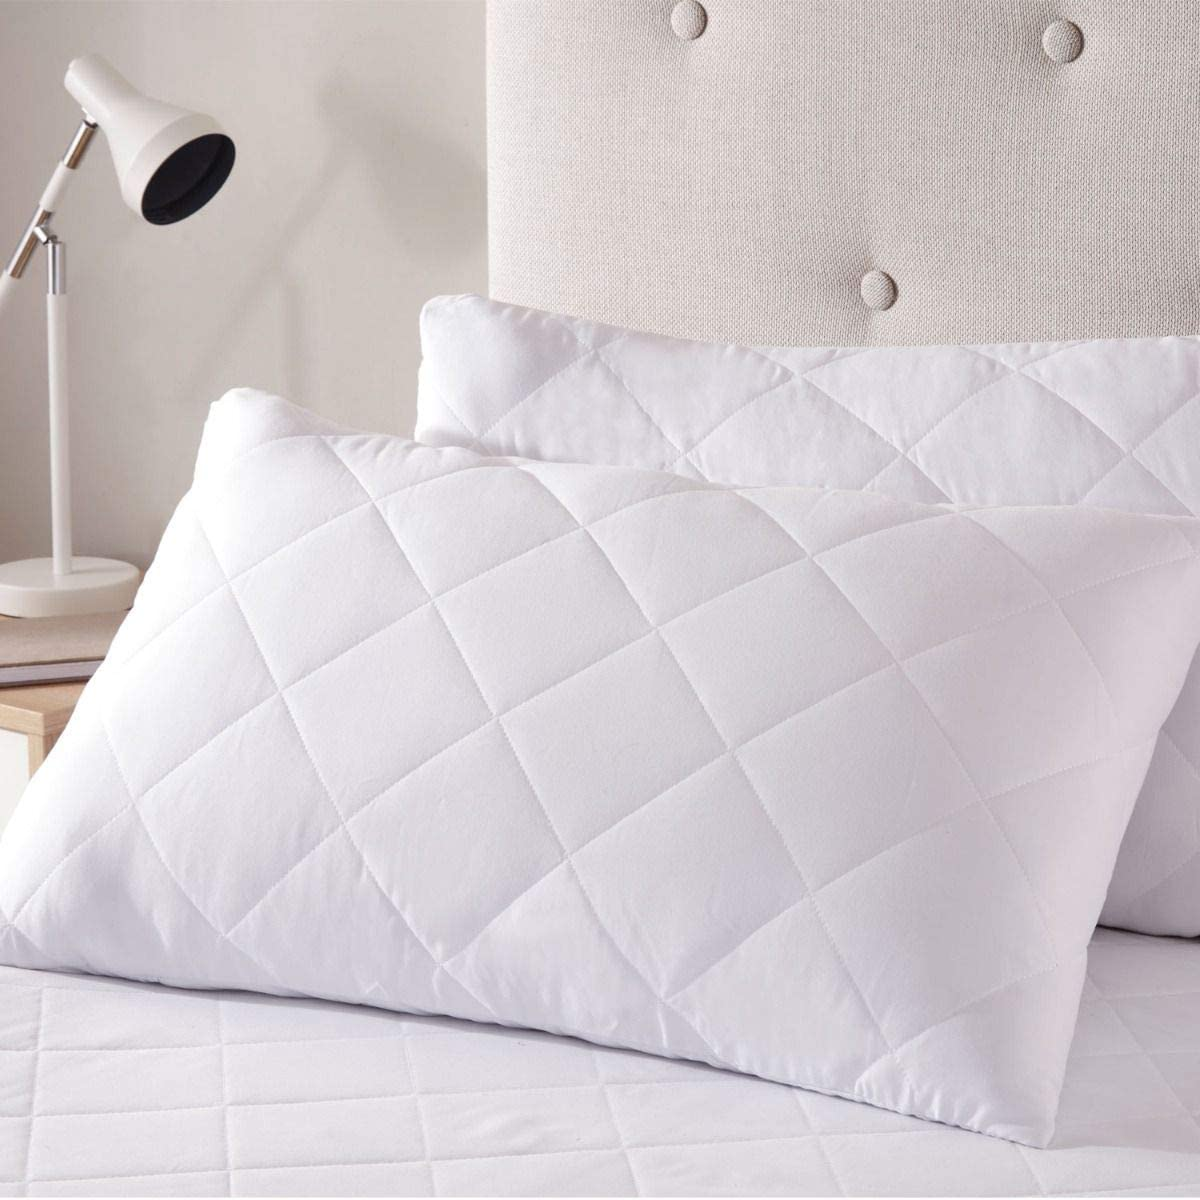 Pillow Protector (2) Quilted